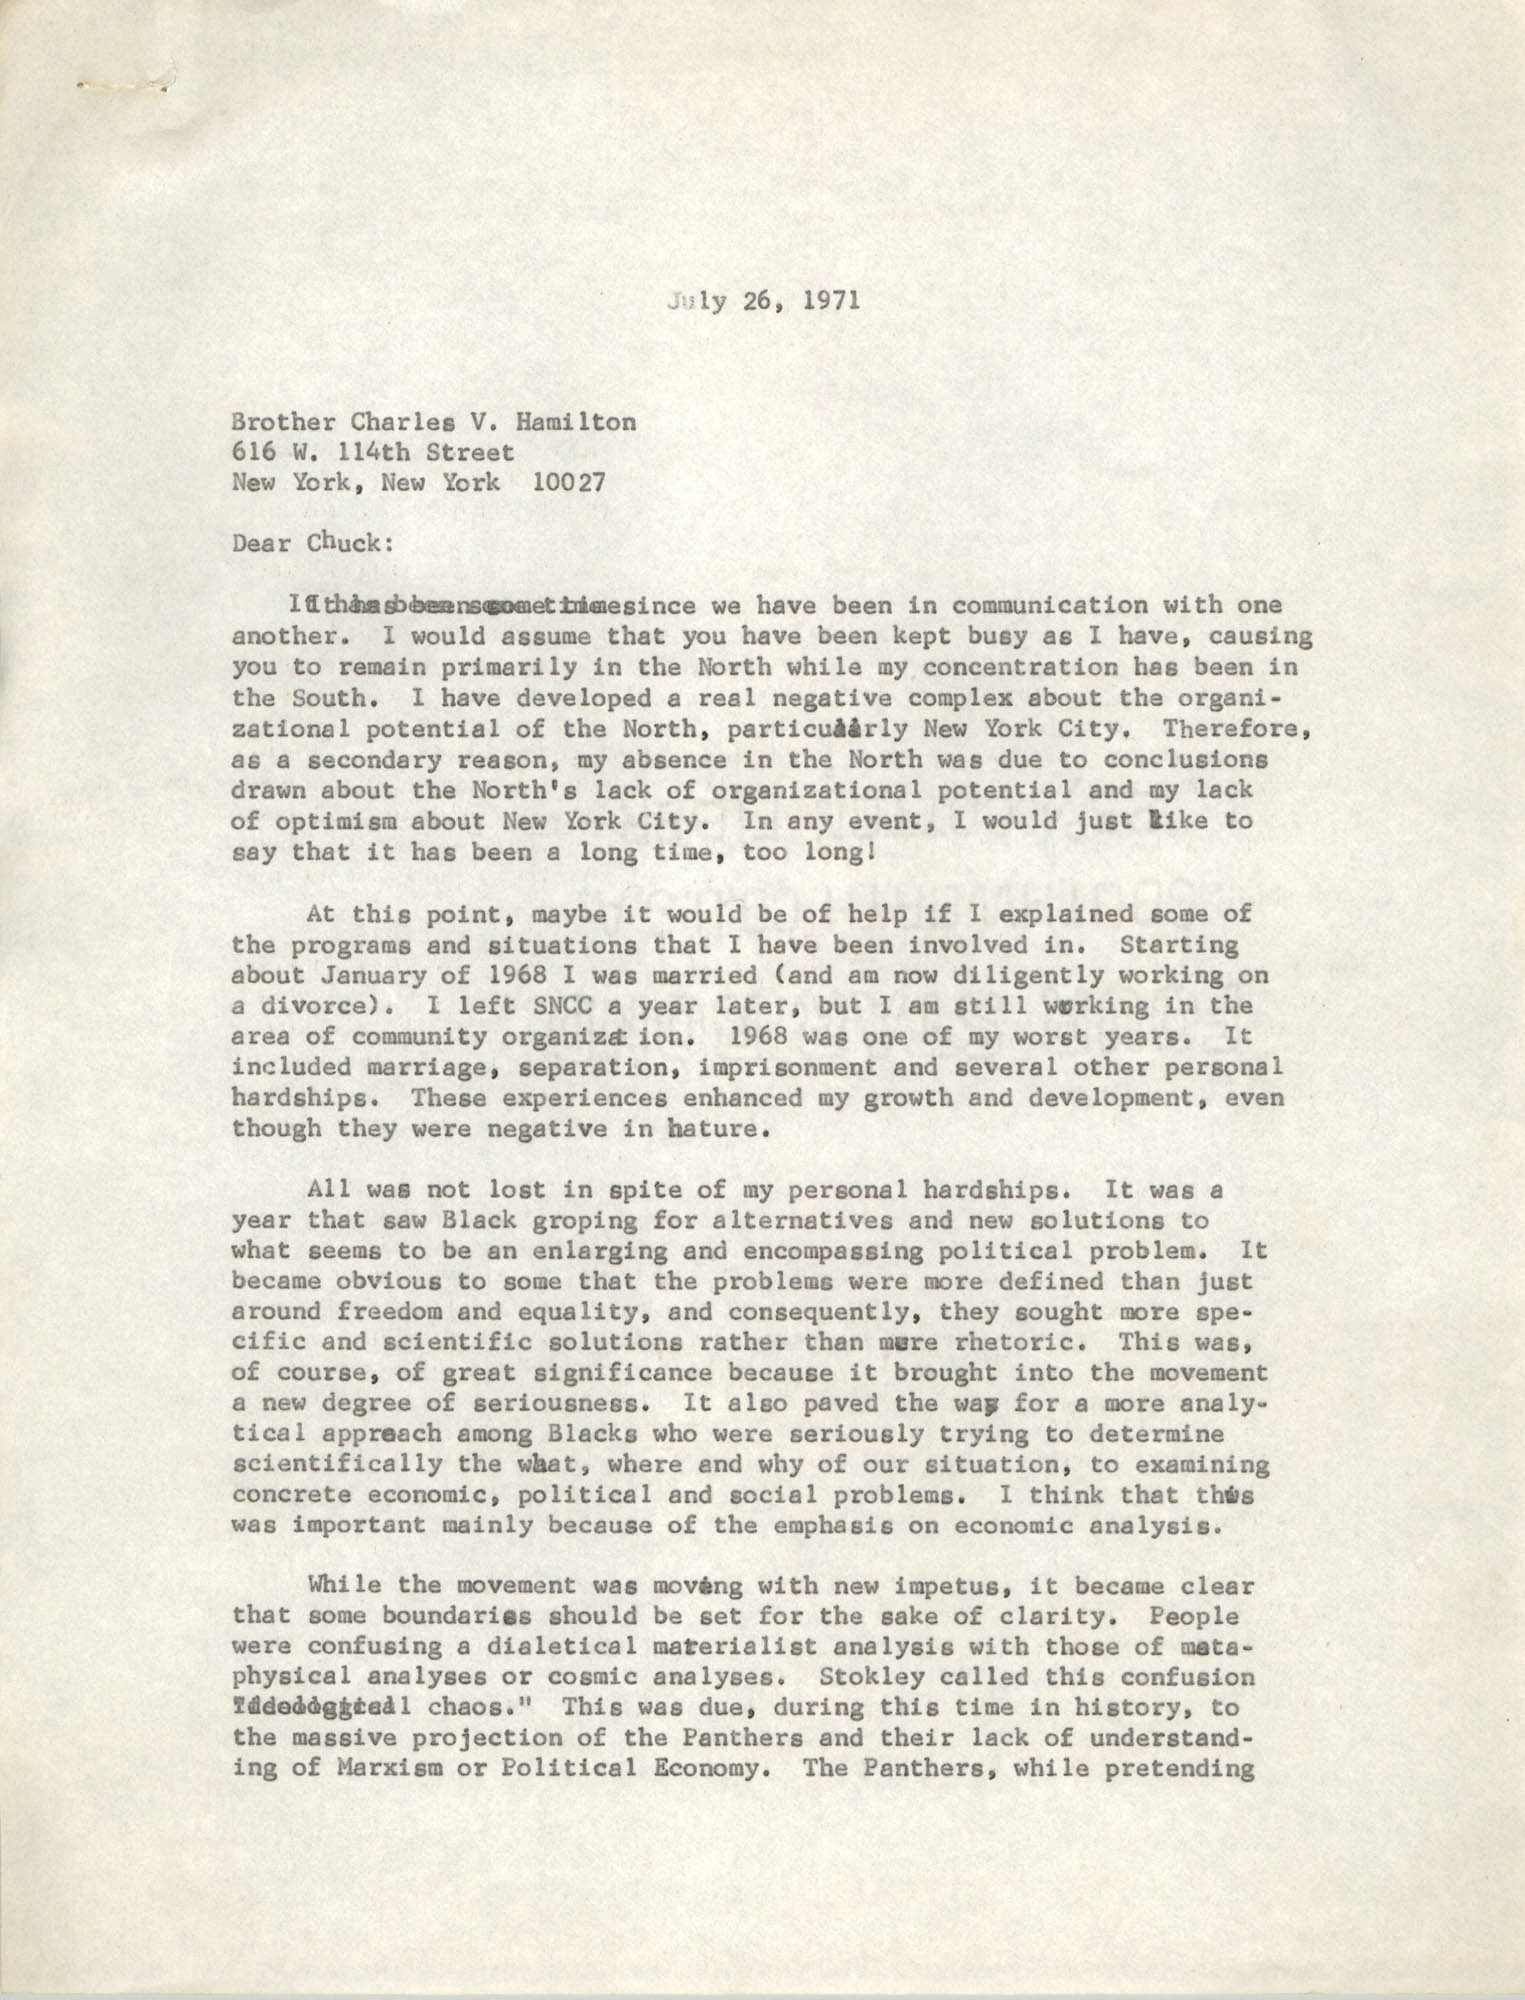 Letter from Cleveland Sellers to Charles V. Hamilton, July 26, 1971